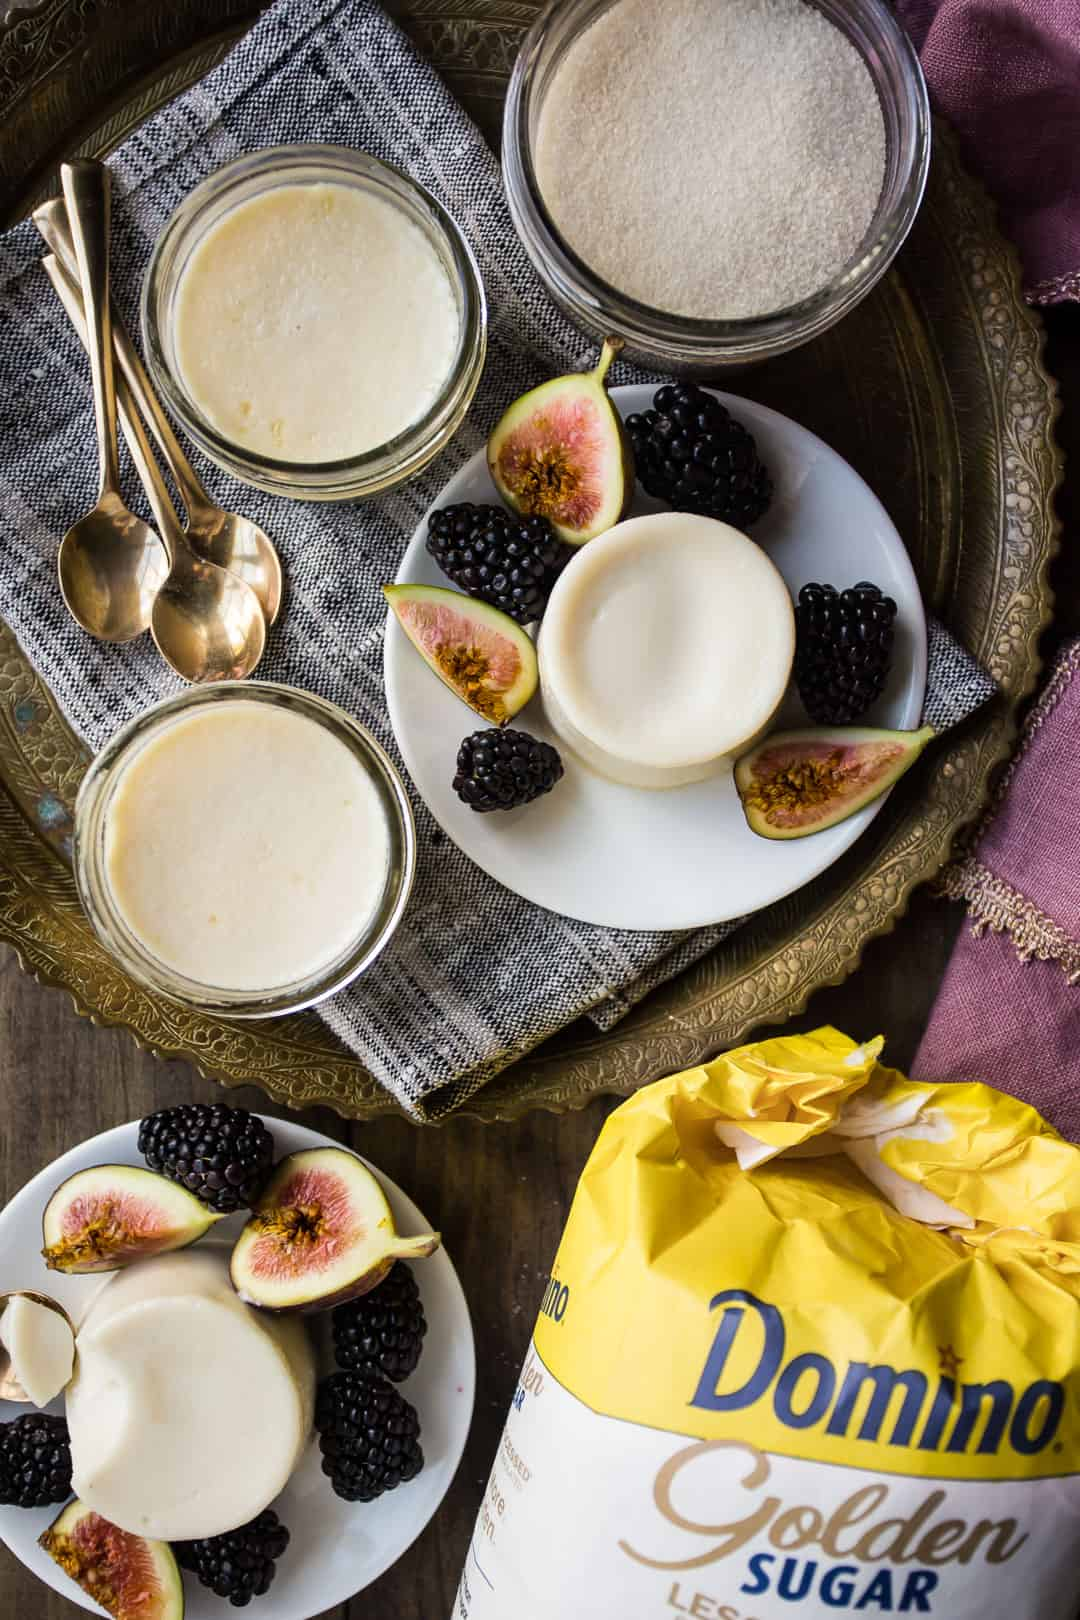 Classic panna cotta recipe, on a wooden table with golden sugar and small gold dessert spoons.